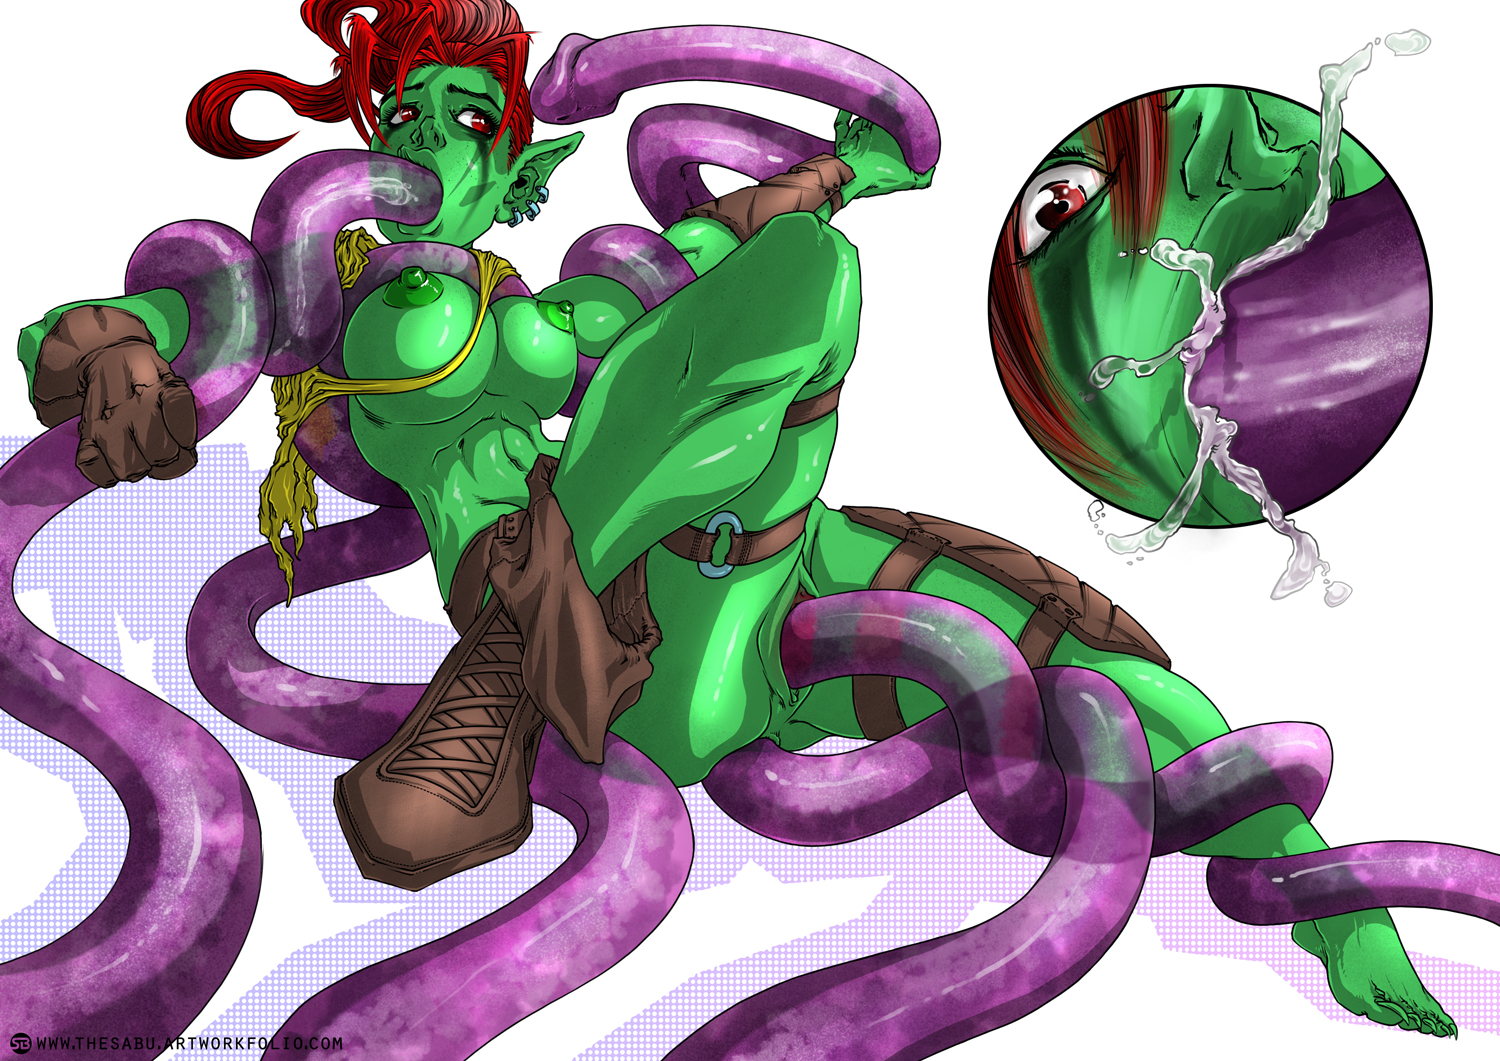 Goblin tentacle rape PART 2 (COMMISSION)